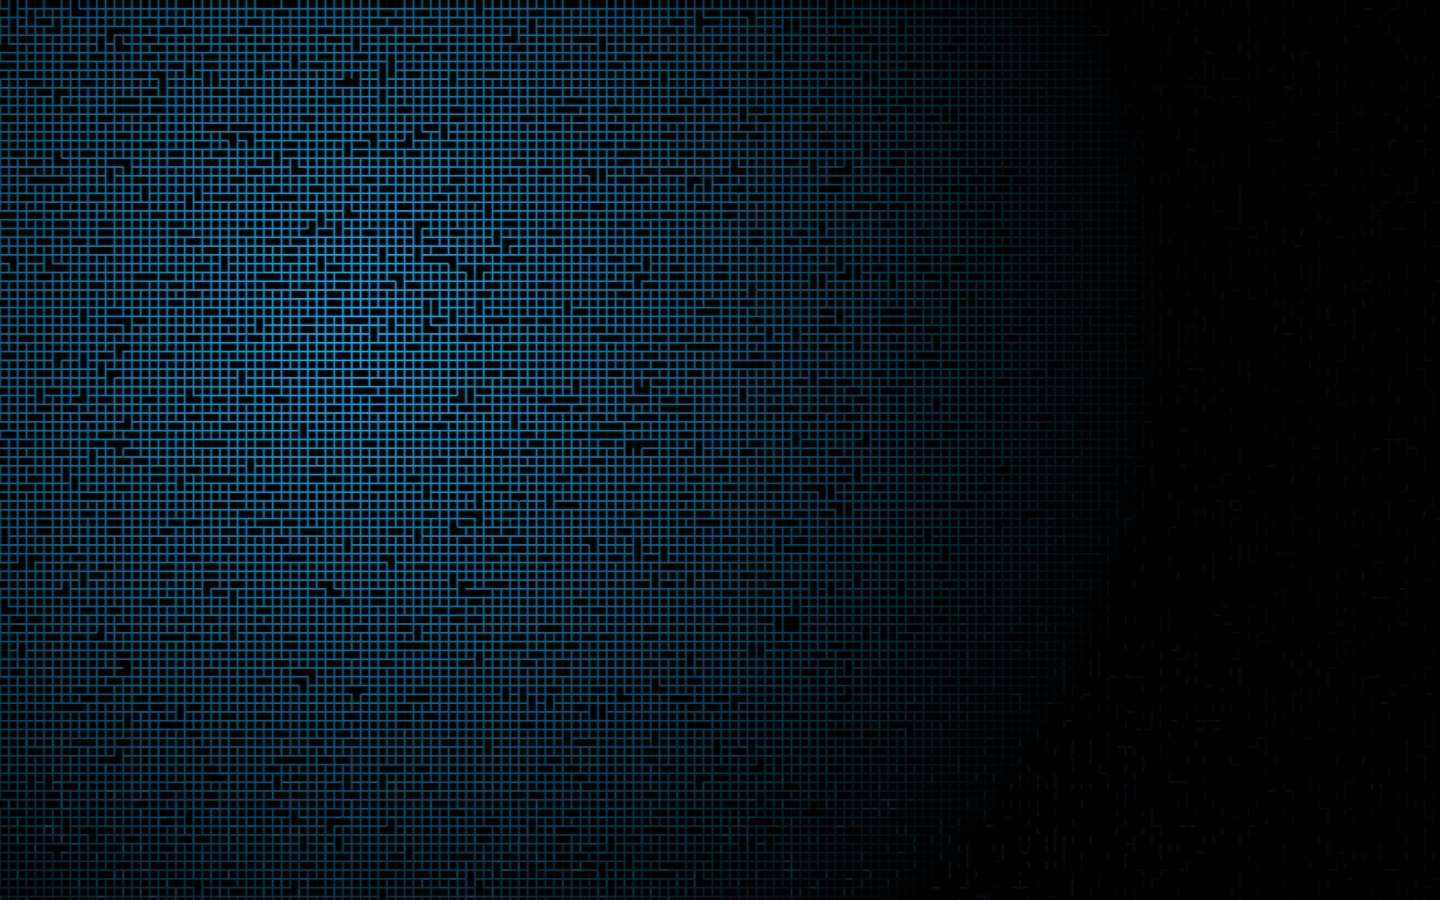 blue background Mac Wallpaper Download Mac Wallpapers Download 1440x900